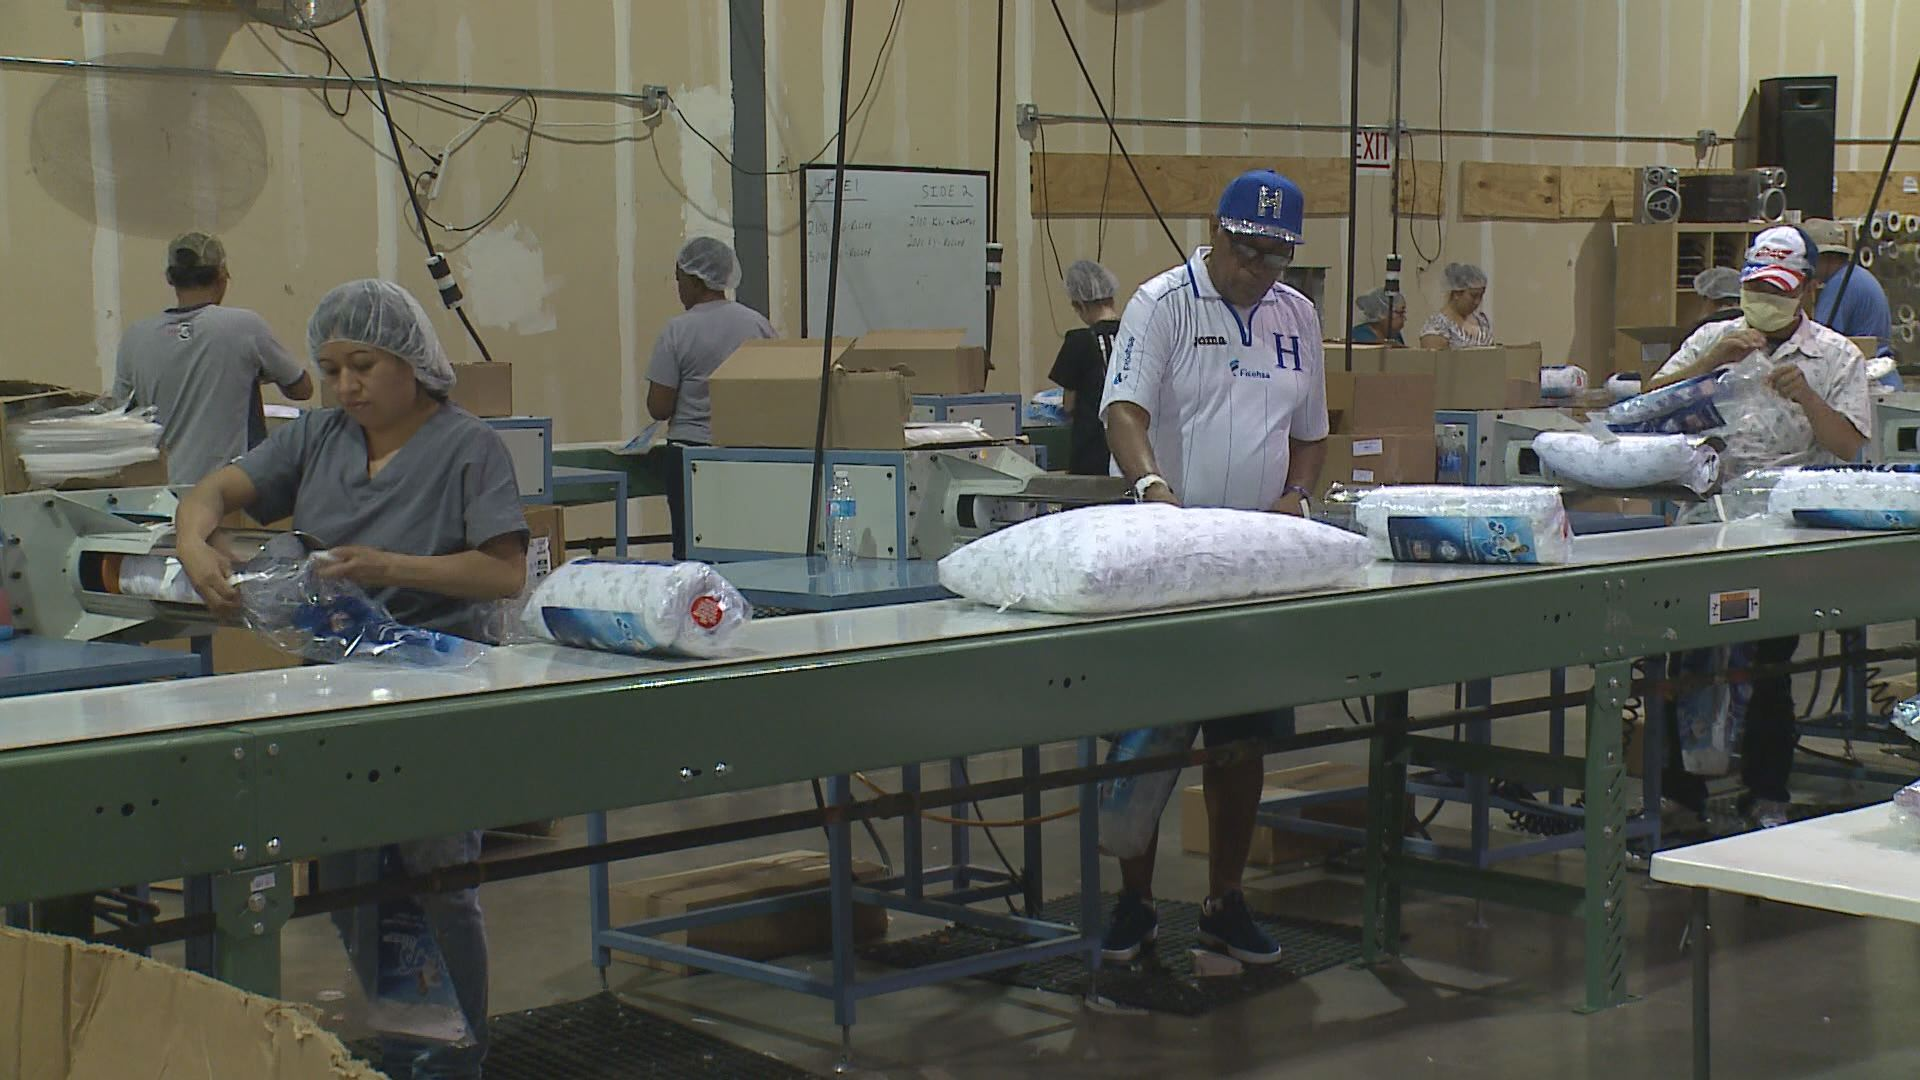 My-pillow-factory Kare11 Mn Based Mypillow Adds New Factory Jobs